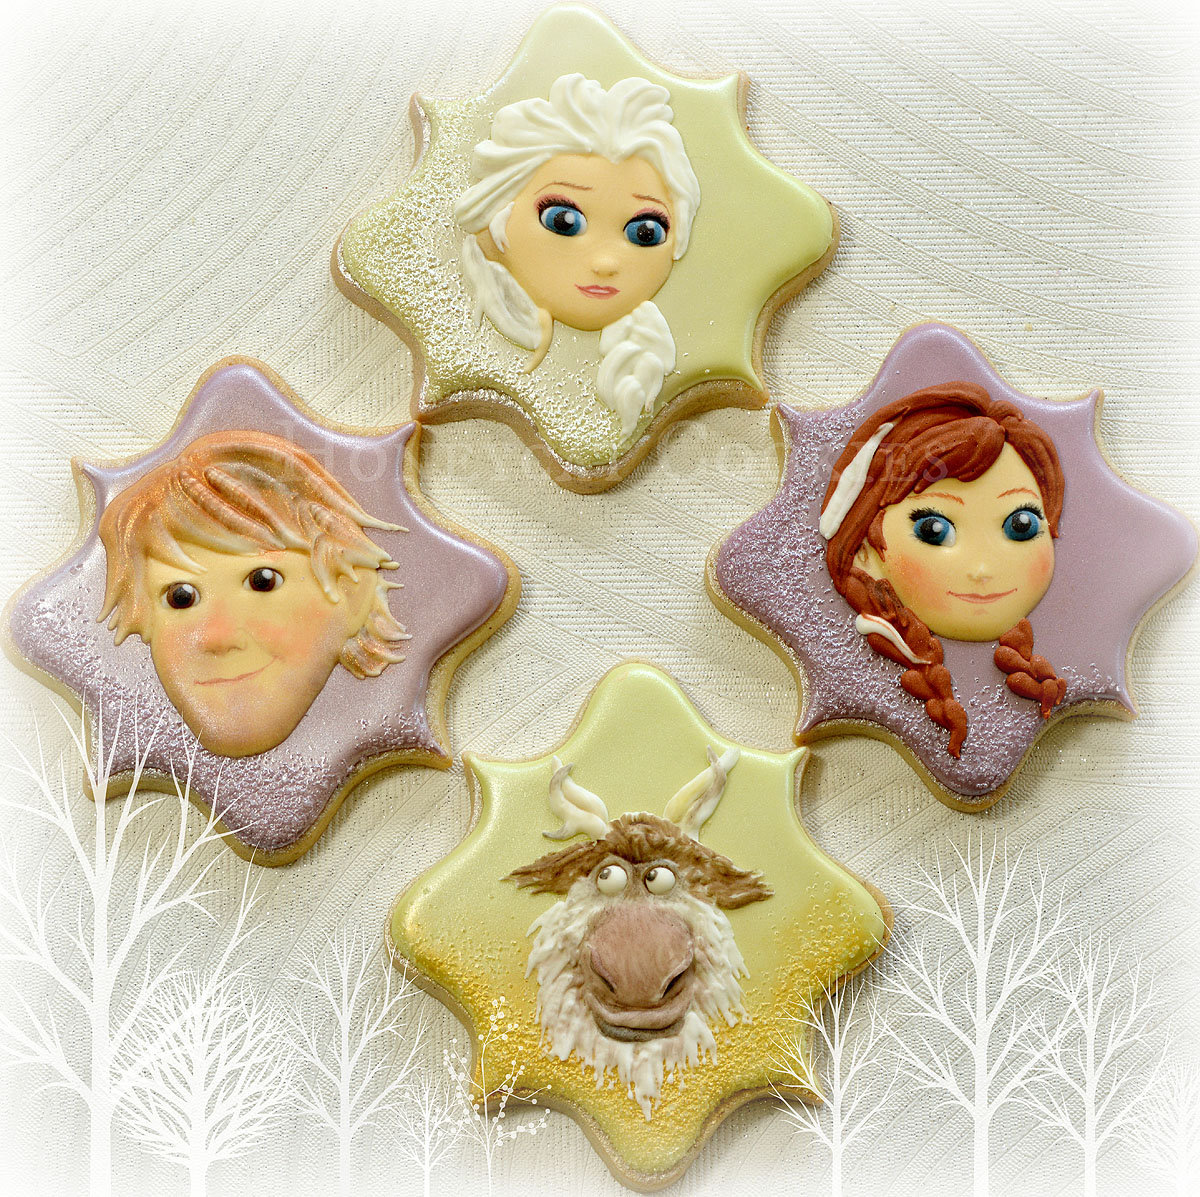 Elsa, Anna, Christoff and Sven from Disney's Frozen decorated character cookies, photo by Honeycat Cookies